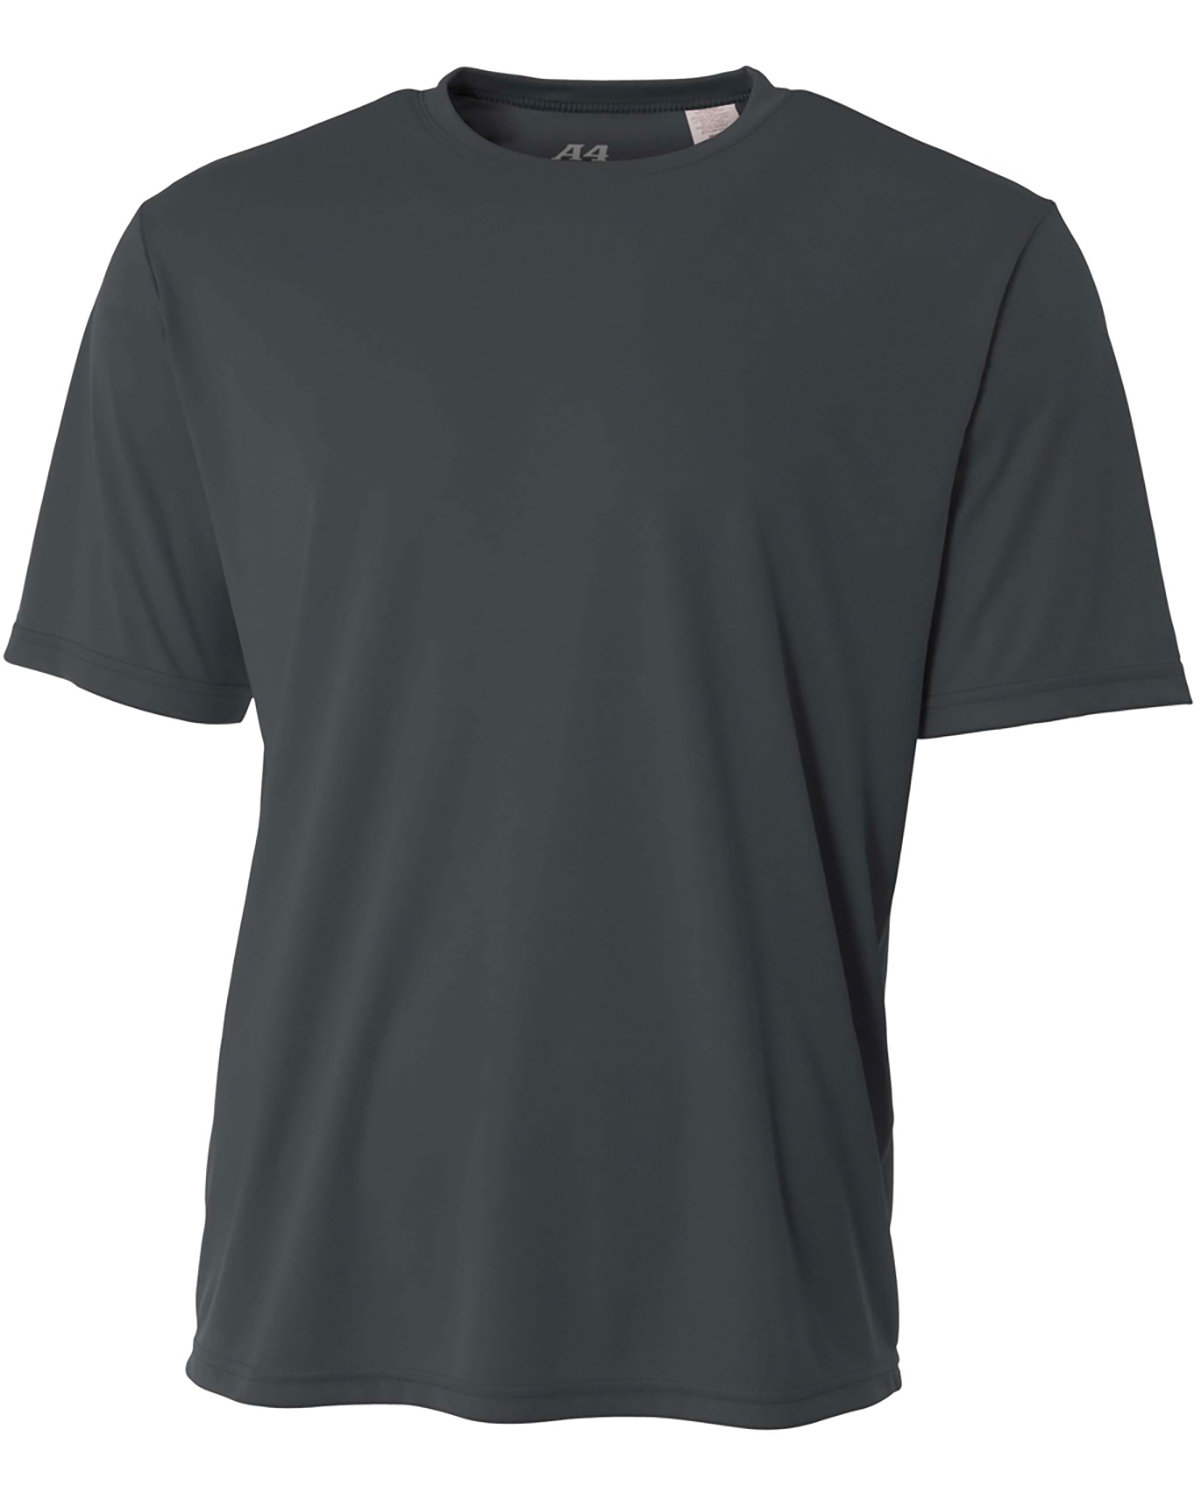 A4 Youth Cooling Performance T-Shirt GRAPHITE